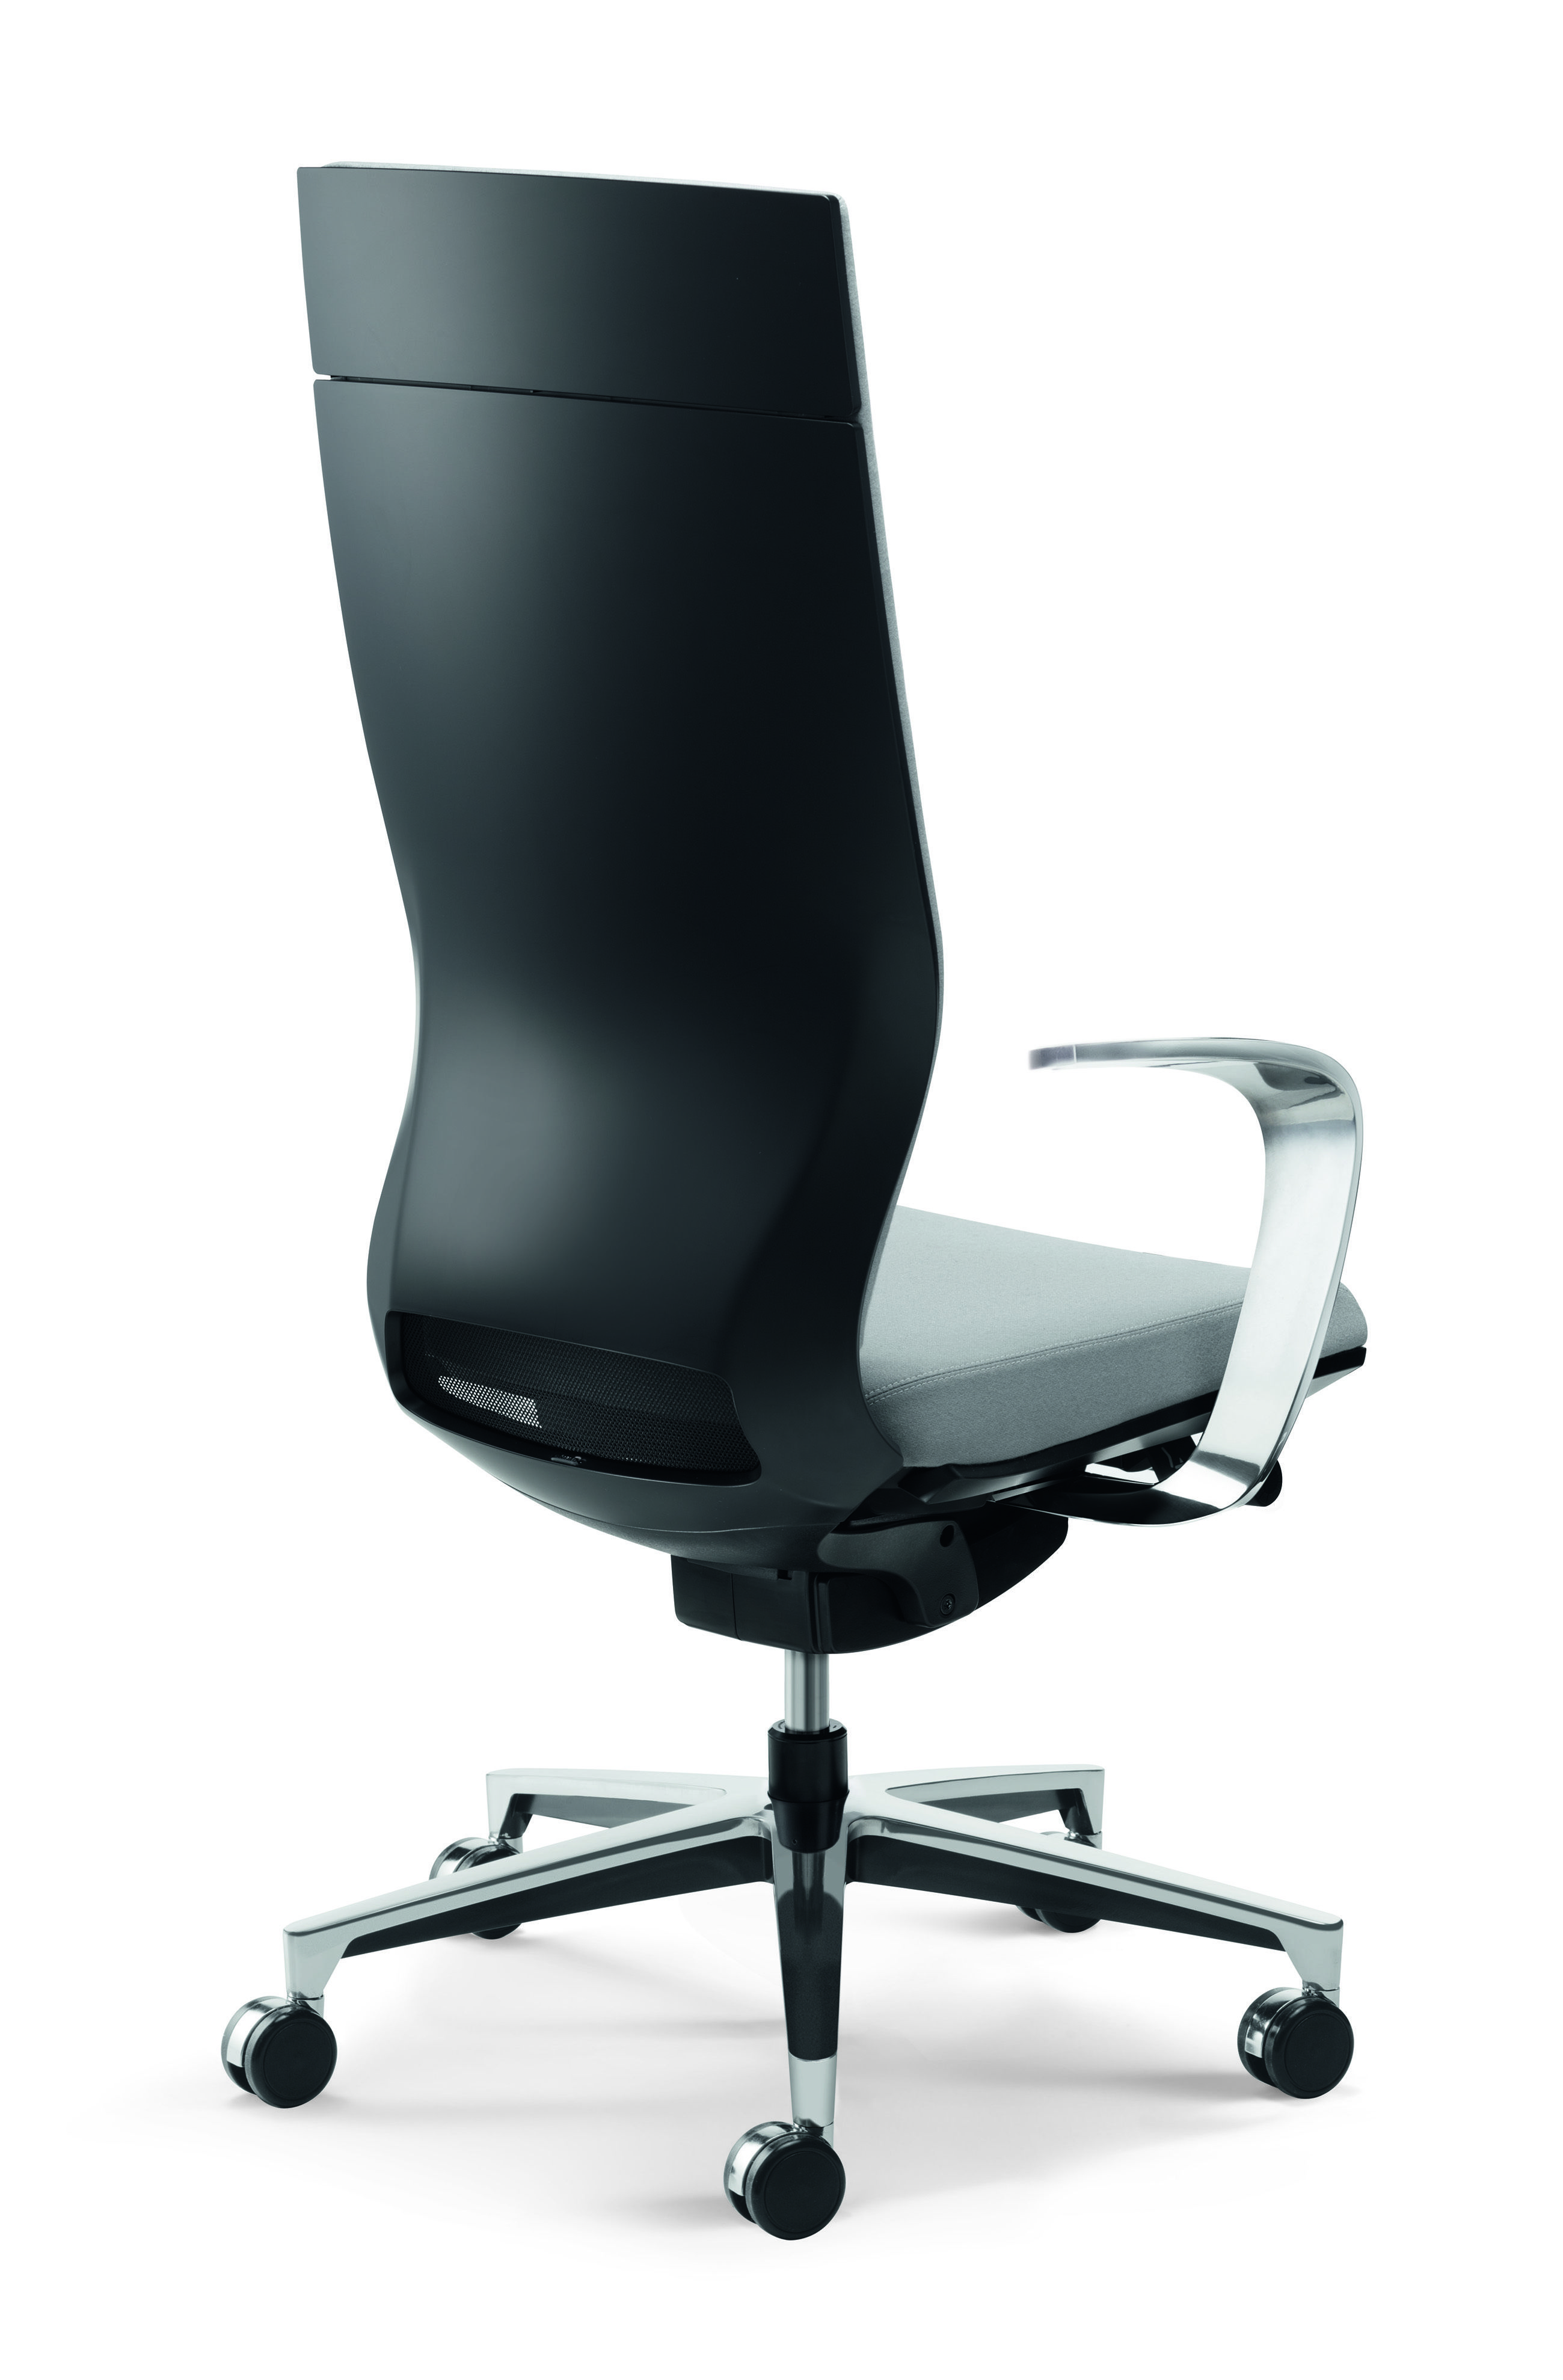 Kartell Spoon Bureaustoel.Moteo Executive Chair By Kloeber Of Germany Sports Exclusive